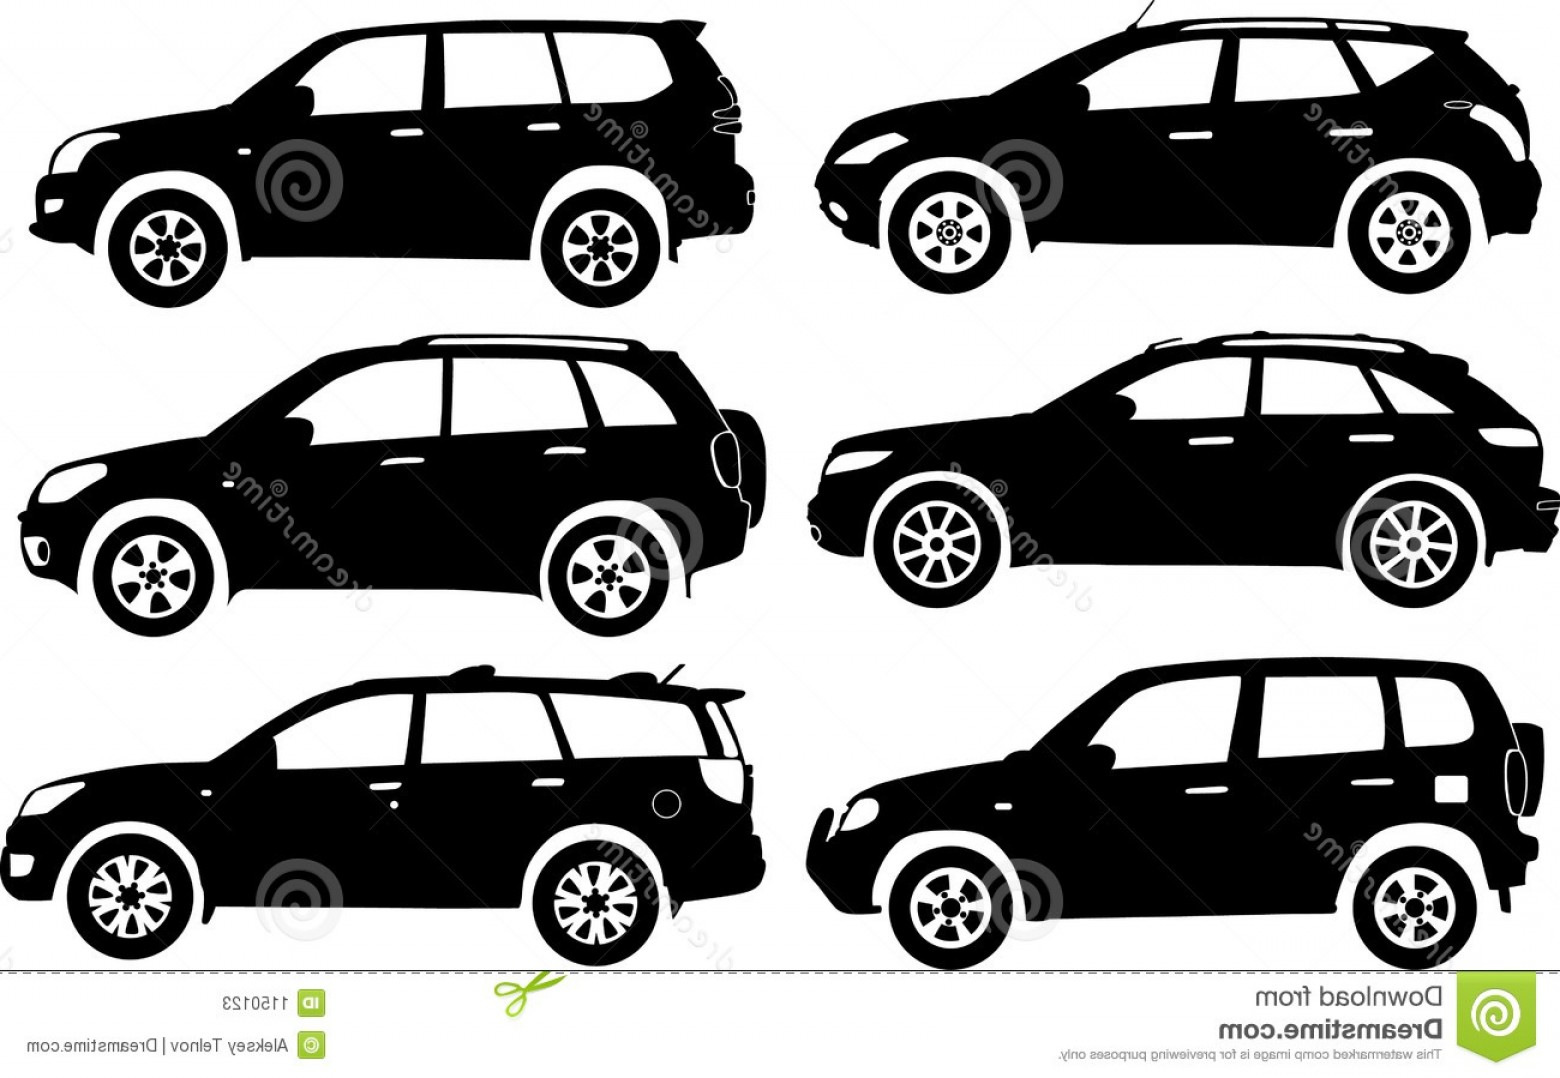 Car Vector Front Elevation: Stock Photos Silhouette Cars Vector Image